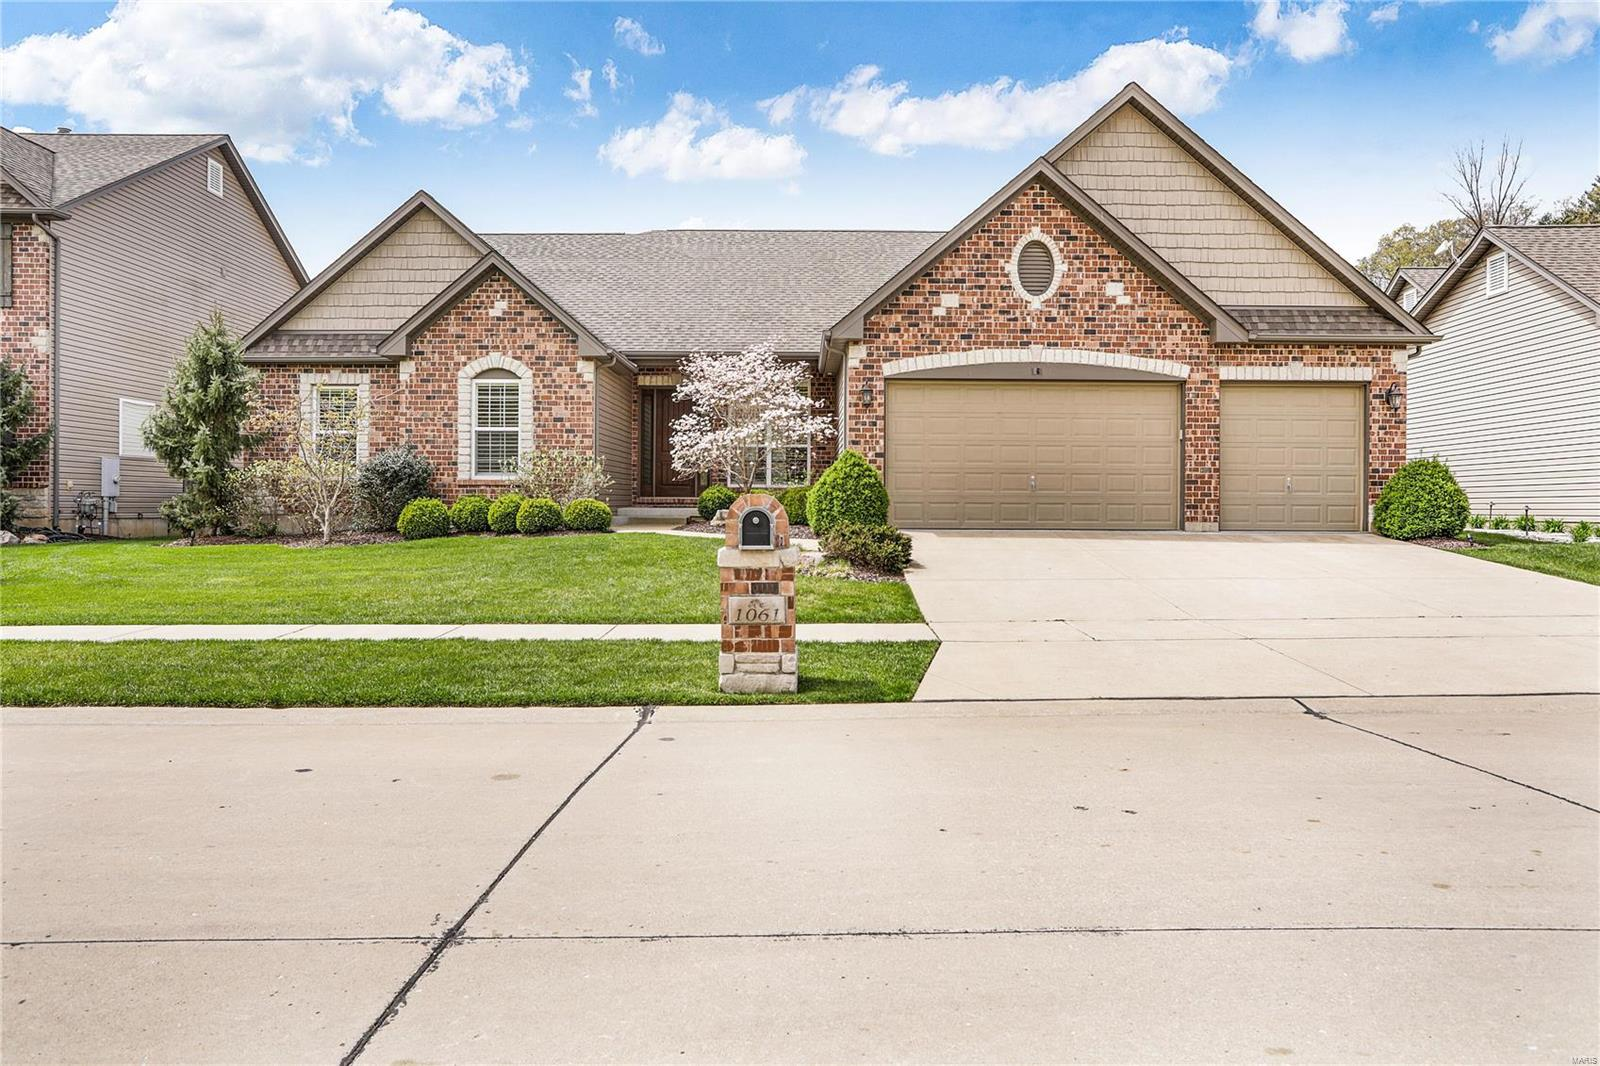 1061 Bridlewood Valley Pointe Property Photo - High Ridge, MO real estate listing